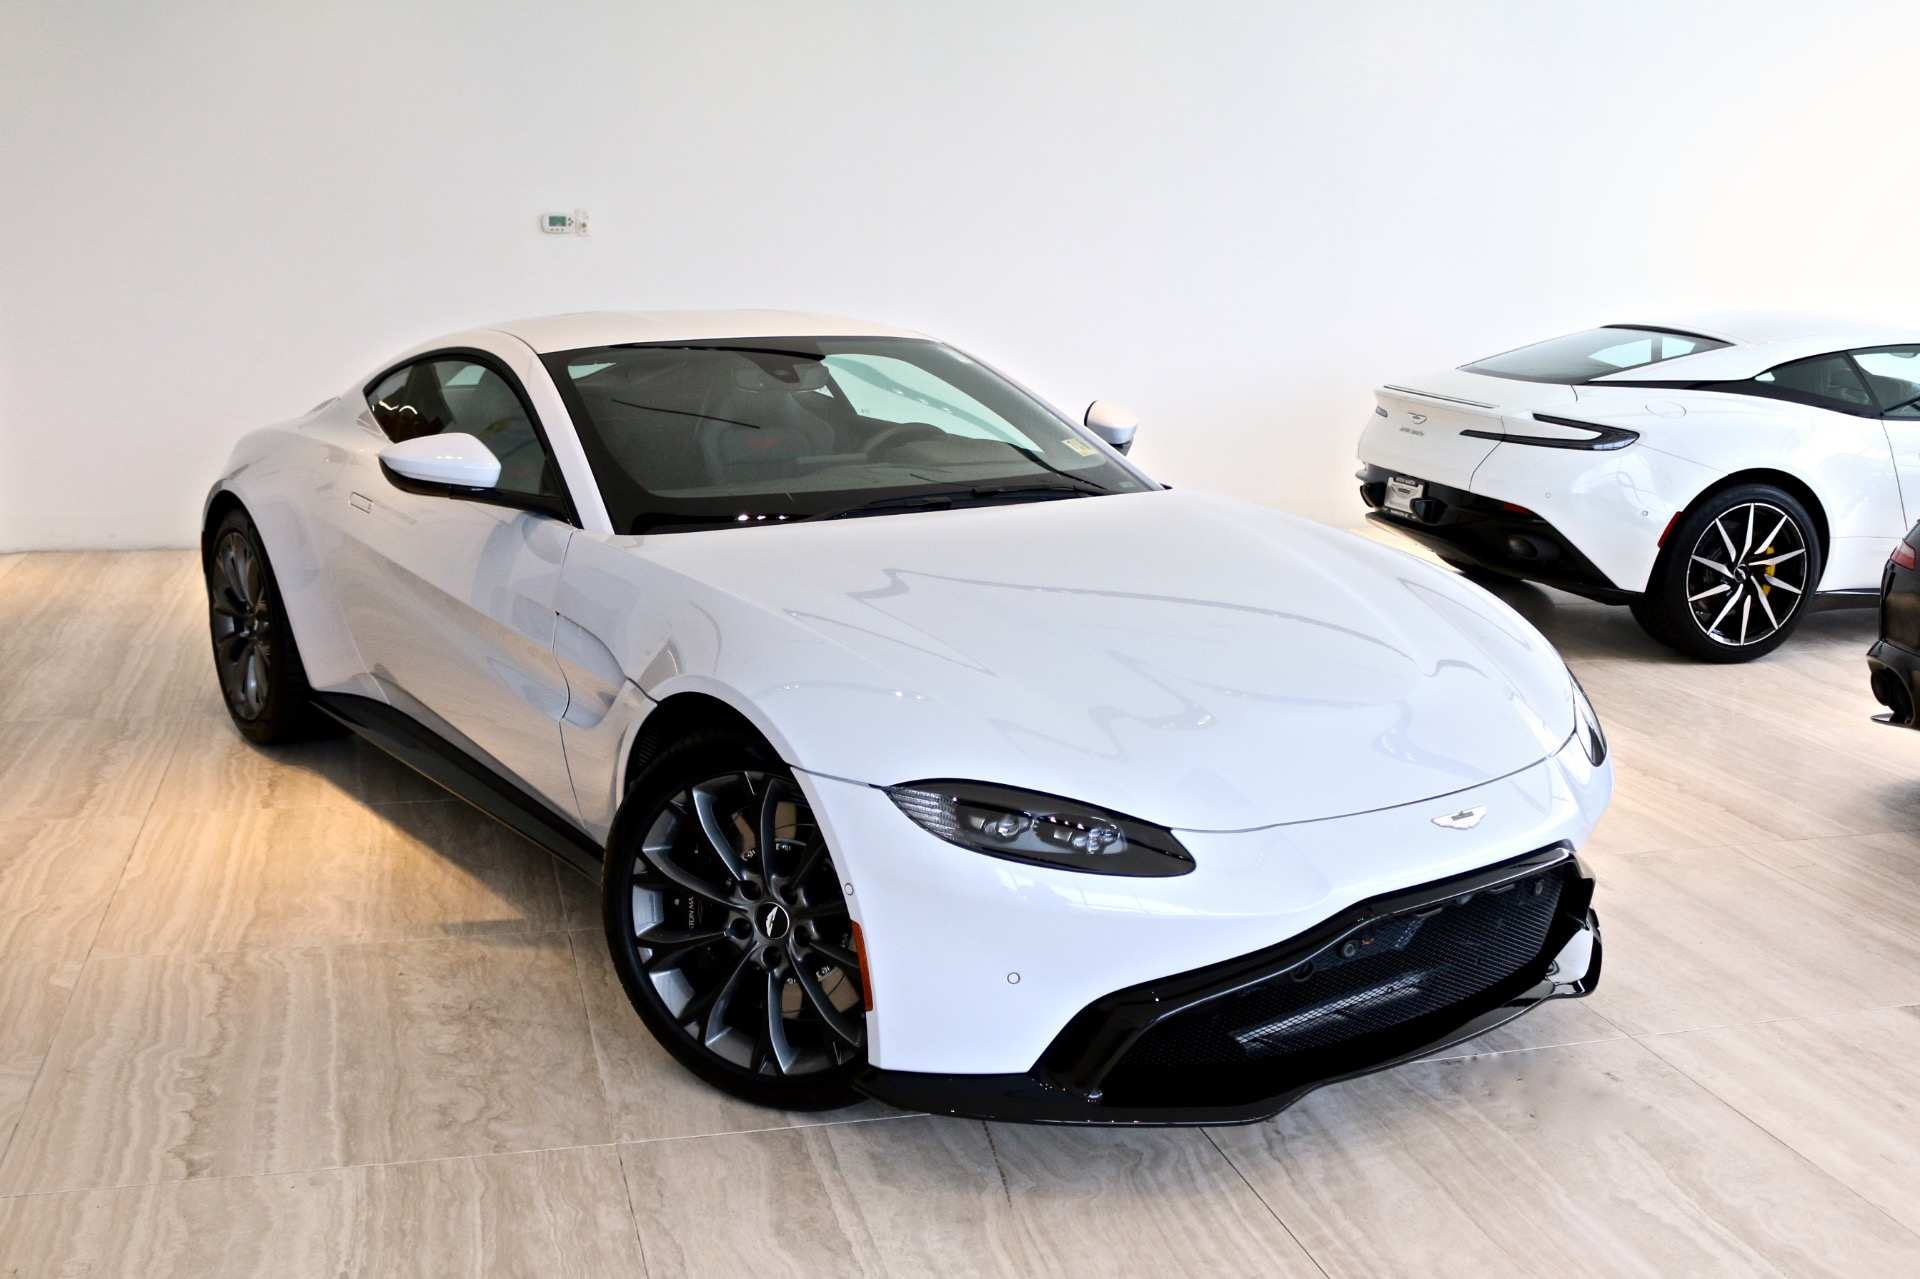 29 Great 2019 Aston Martin Vantage Msrp Overview by 2019 Aston Martin Vantage Msrp